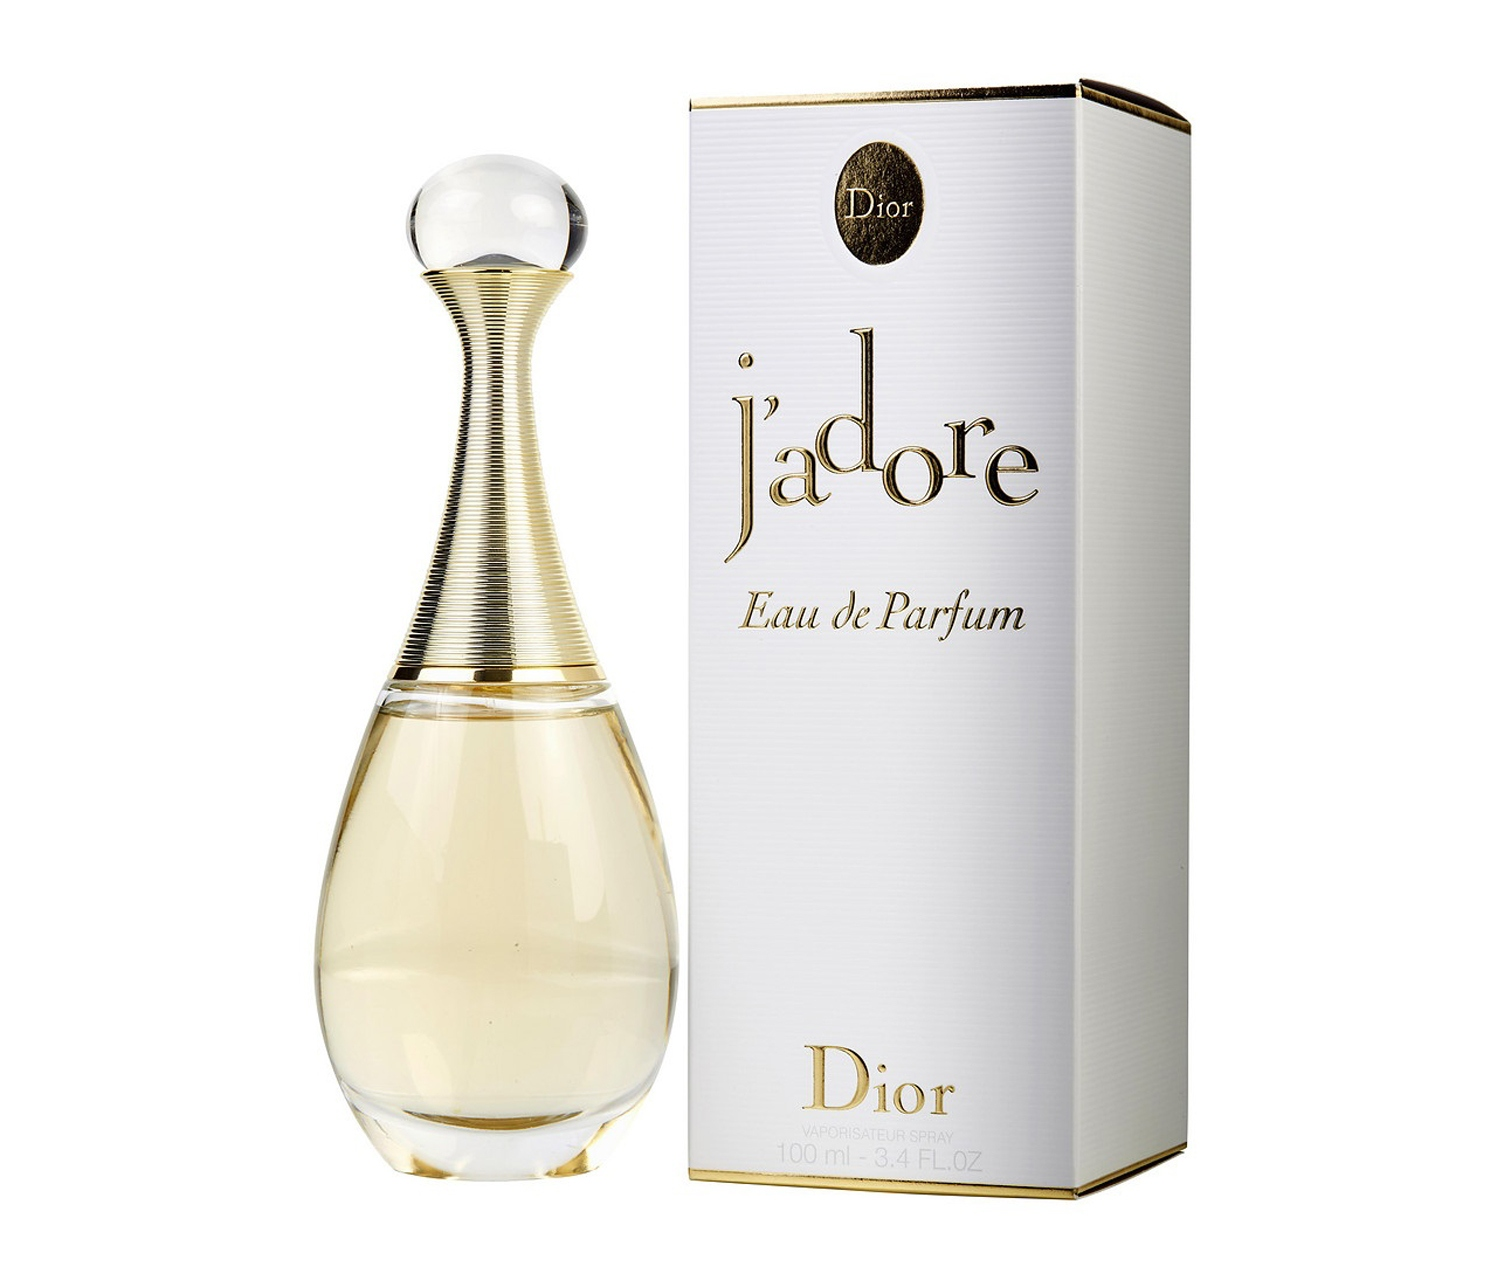 dior j 39 adore voile de parfum 100ml brands for less. Black Bedroom Furniture Sets. Home Design Ideas